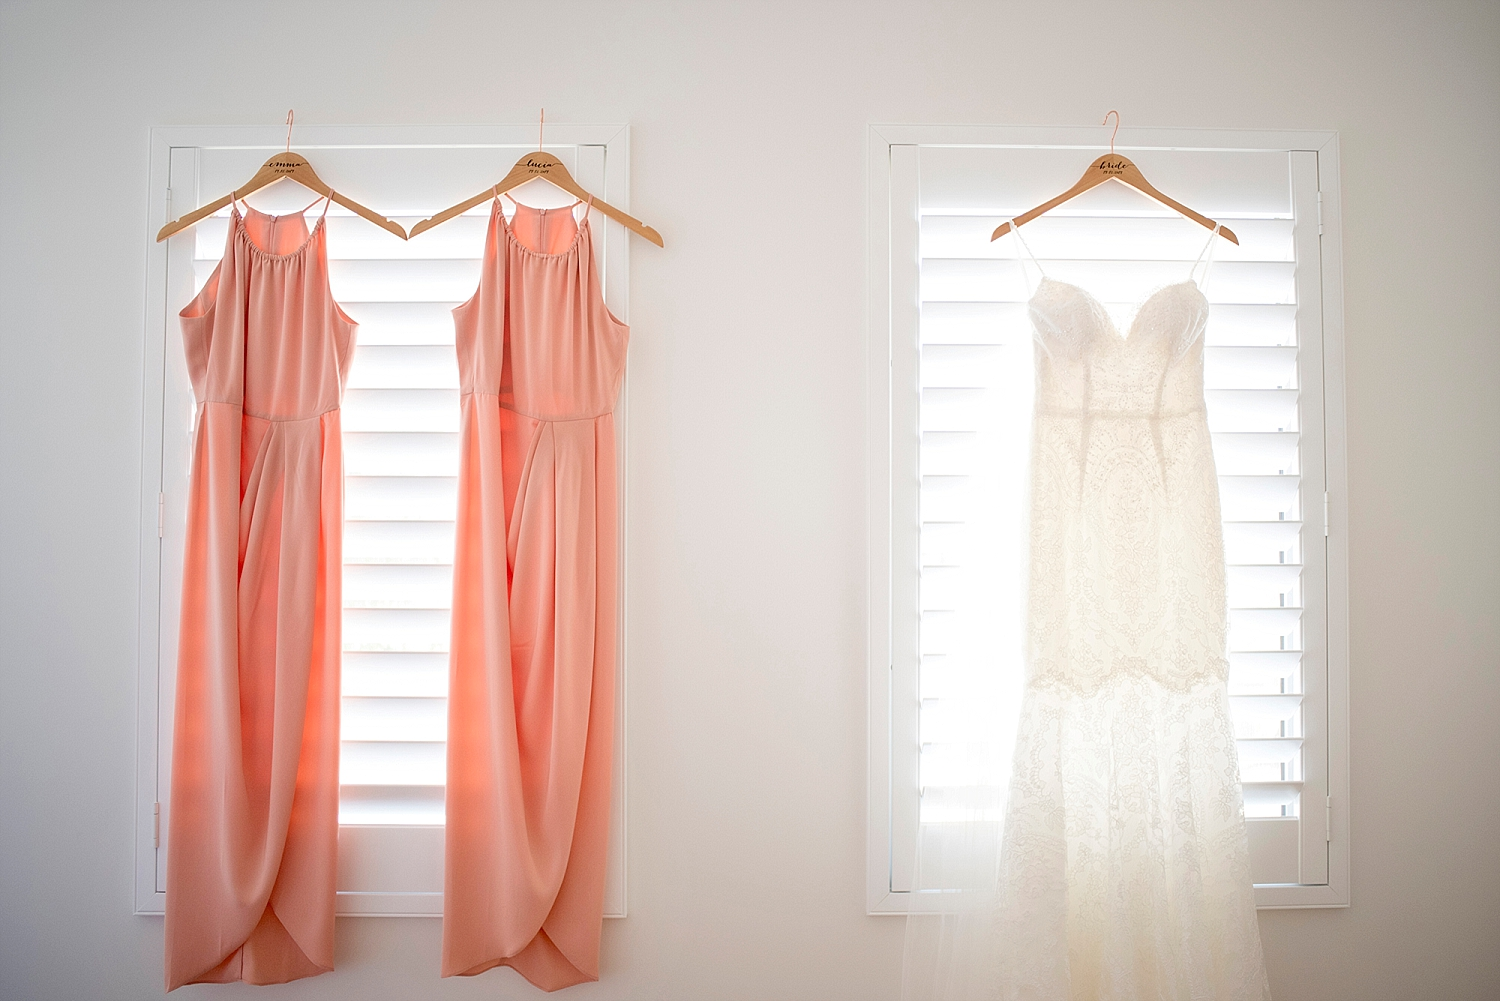 01_lace bridal gown with blush bridesmaids wedding perth.jpg